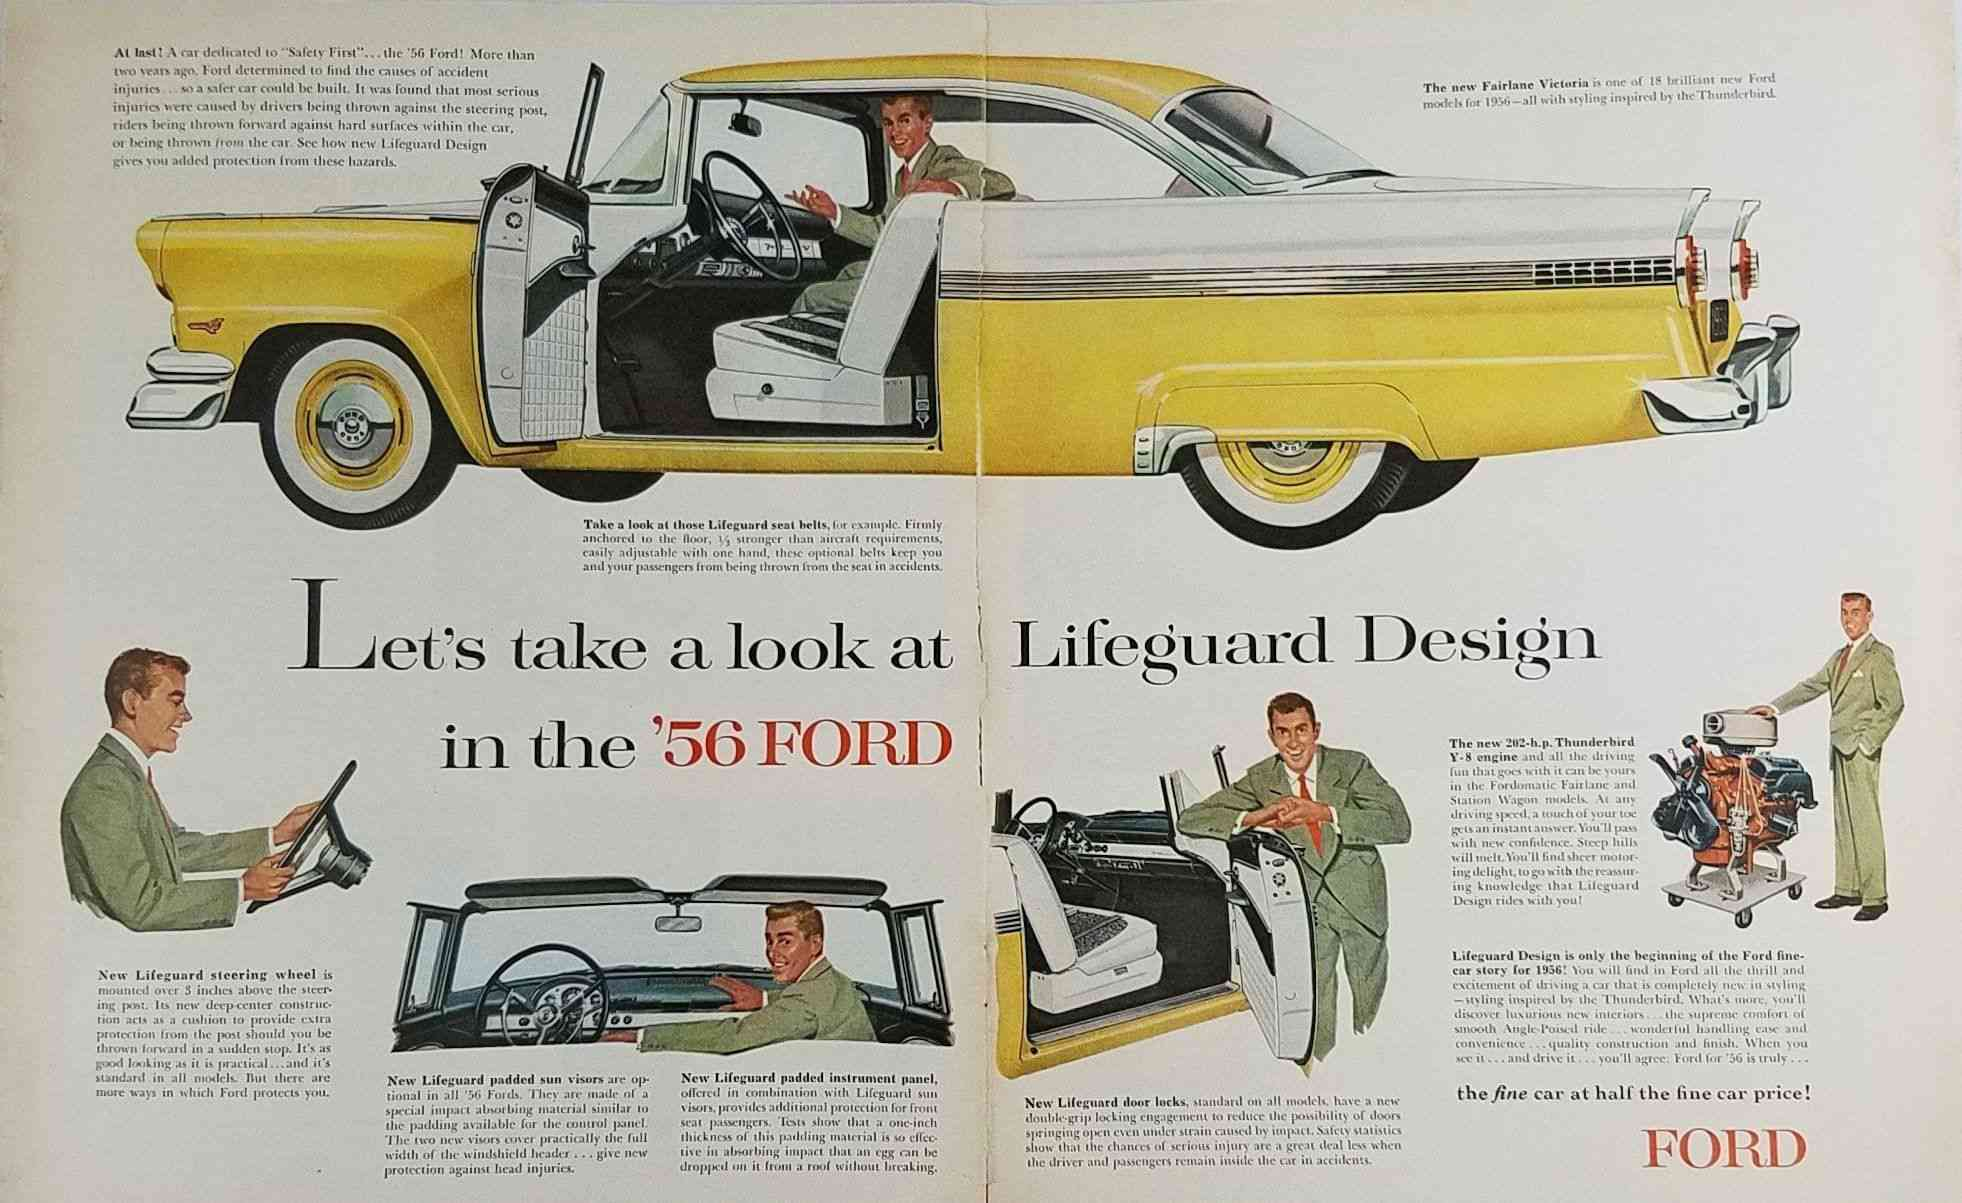 ford ad selling lifeguard Design